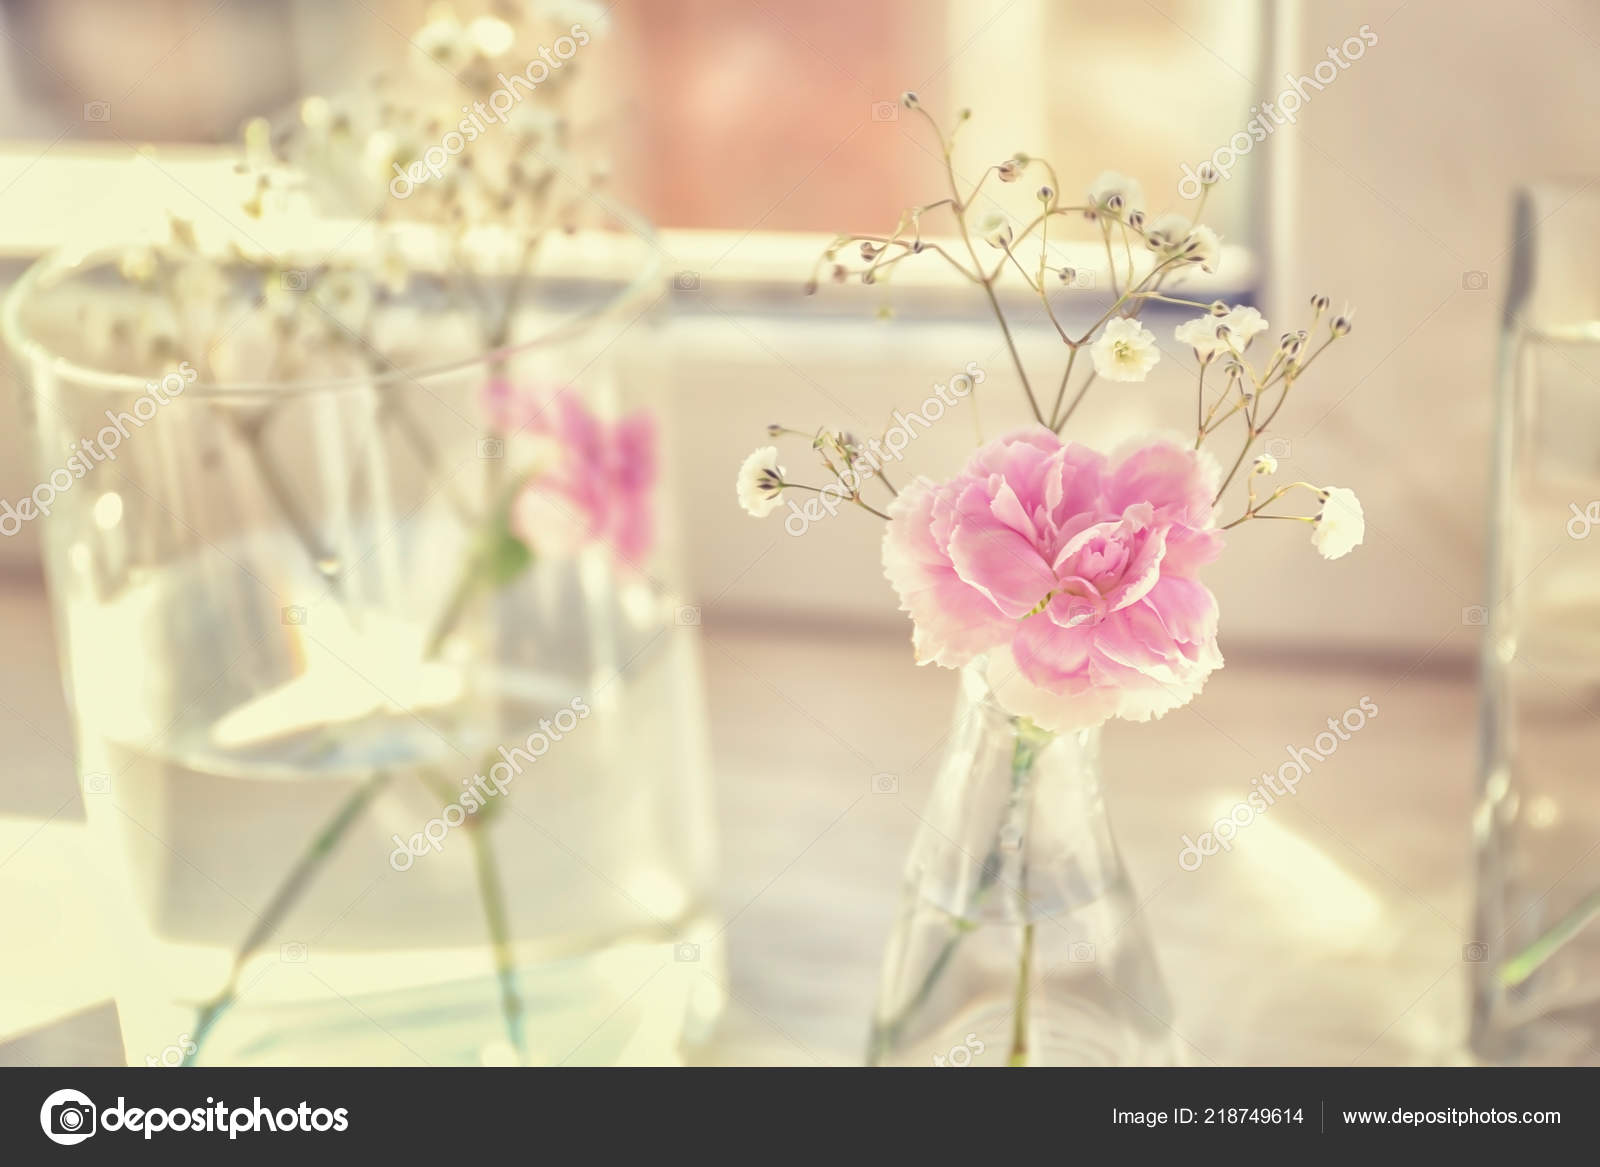 Vases beautiful pink flowers windowsill stock photo serezniy vases beautiful pink flowers windowsill stock photo mightylinksfo